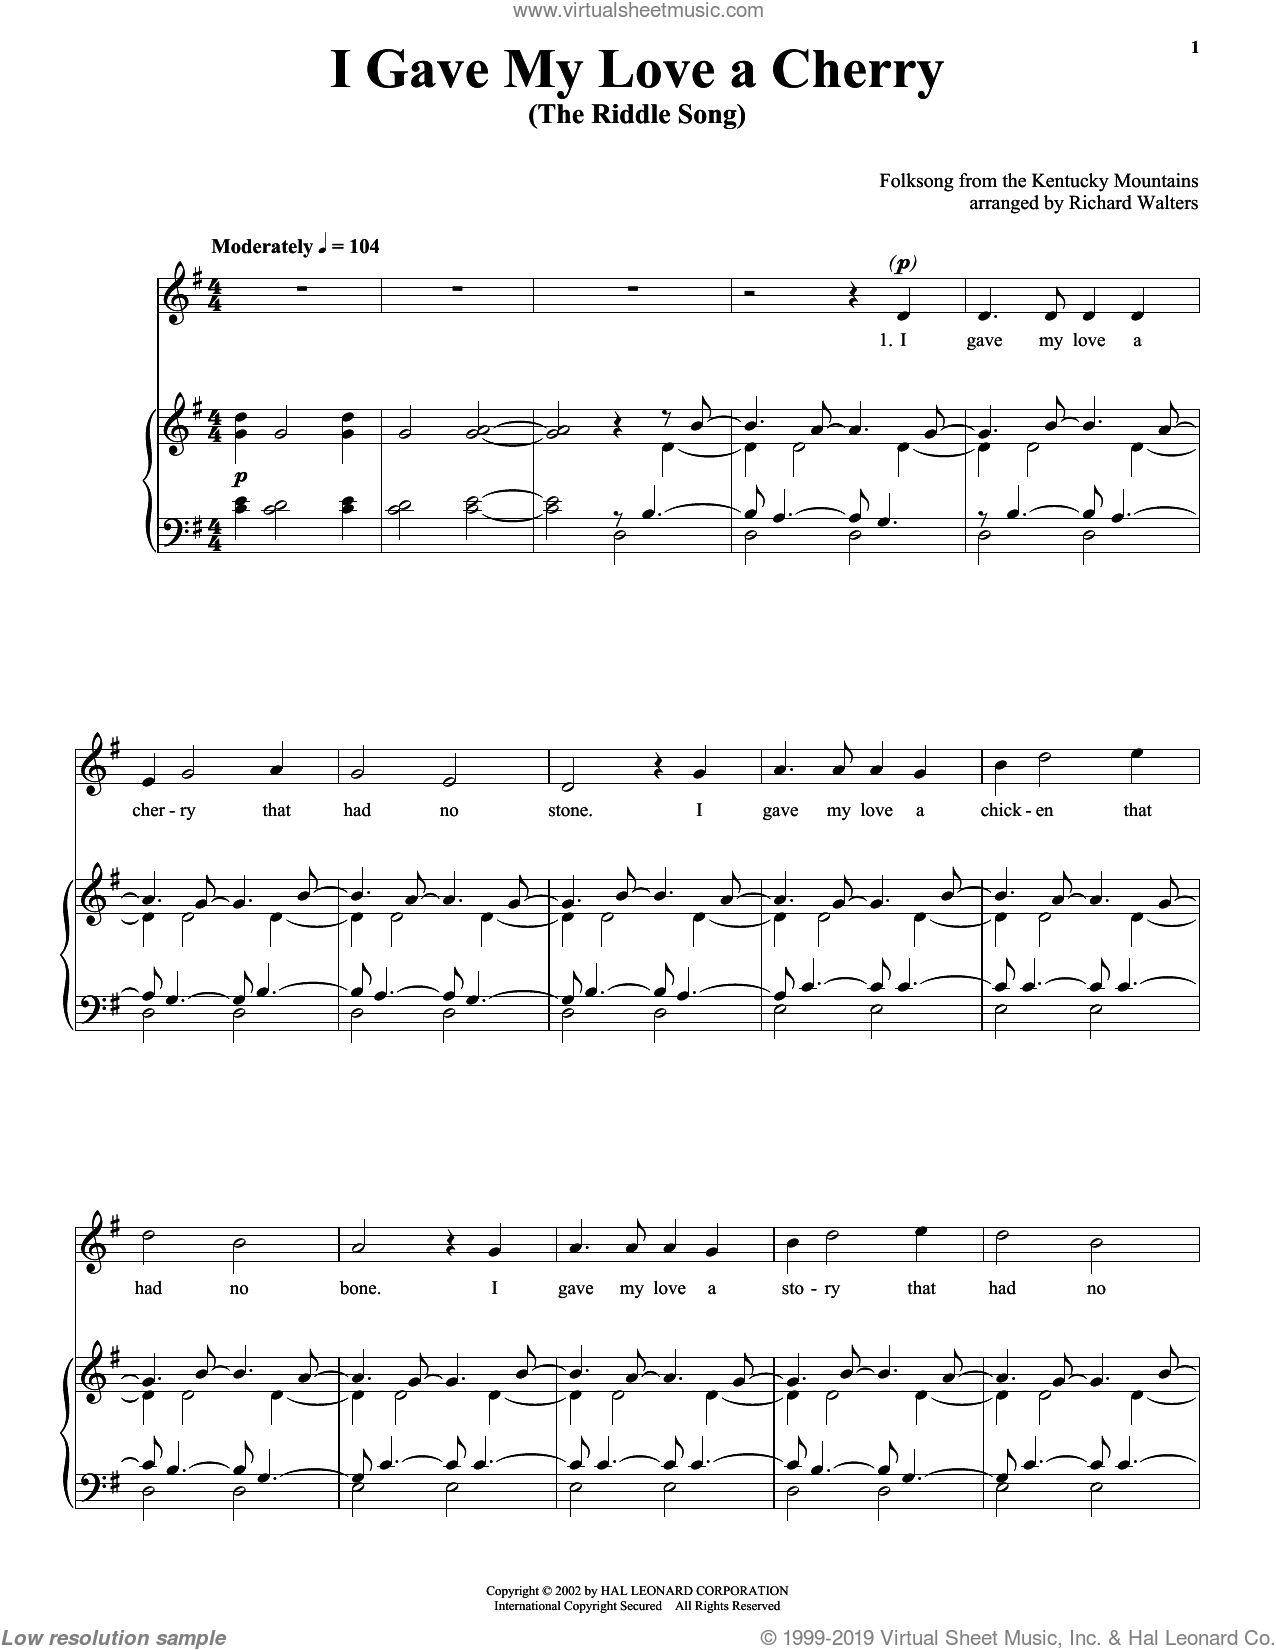 I Gave My Love A Cherry (The Riddle Song) sheet music for voice, piano or guitar